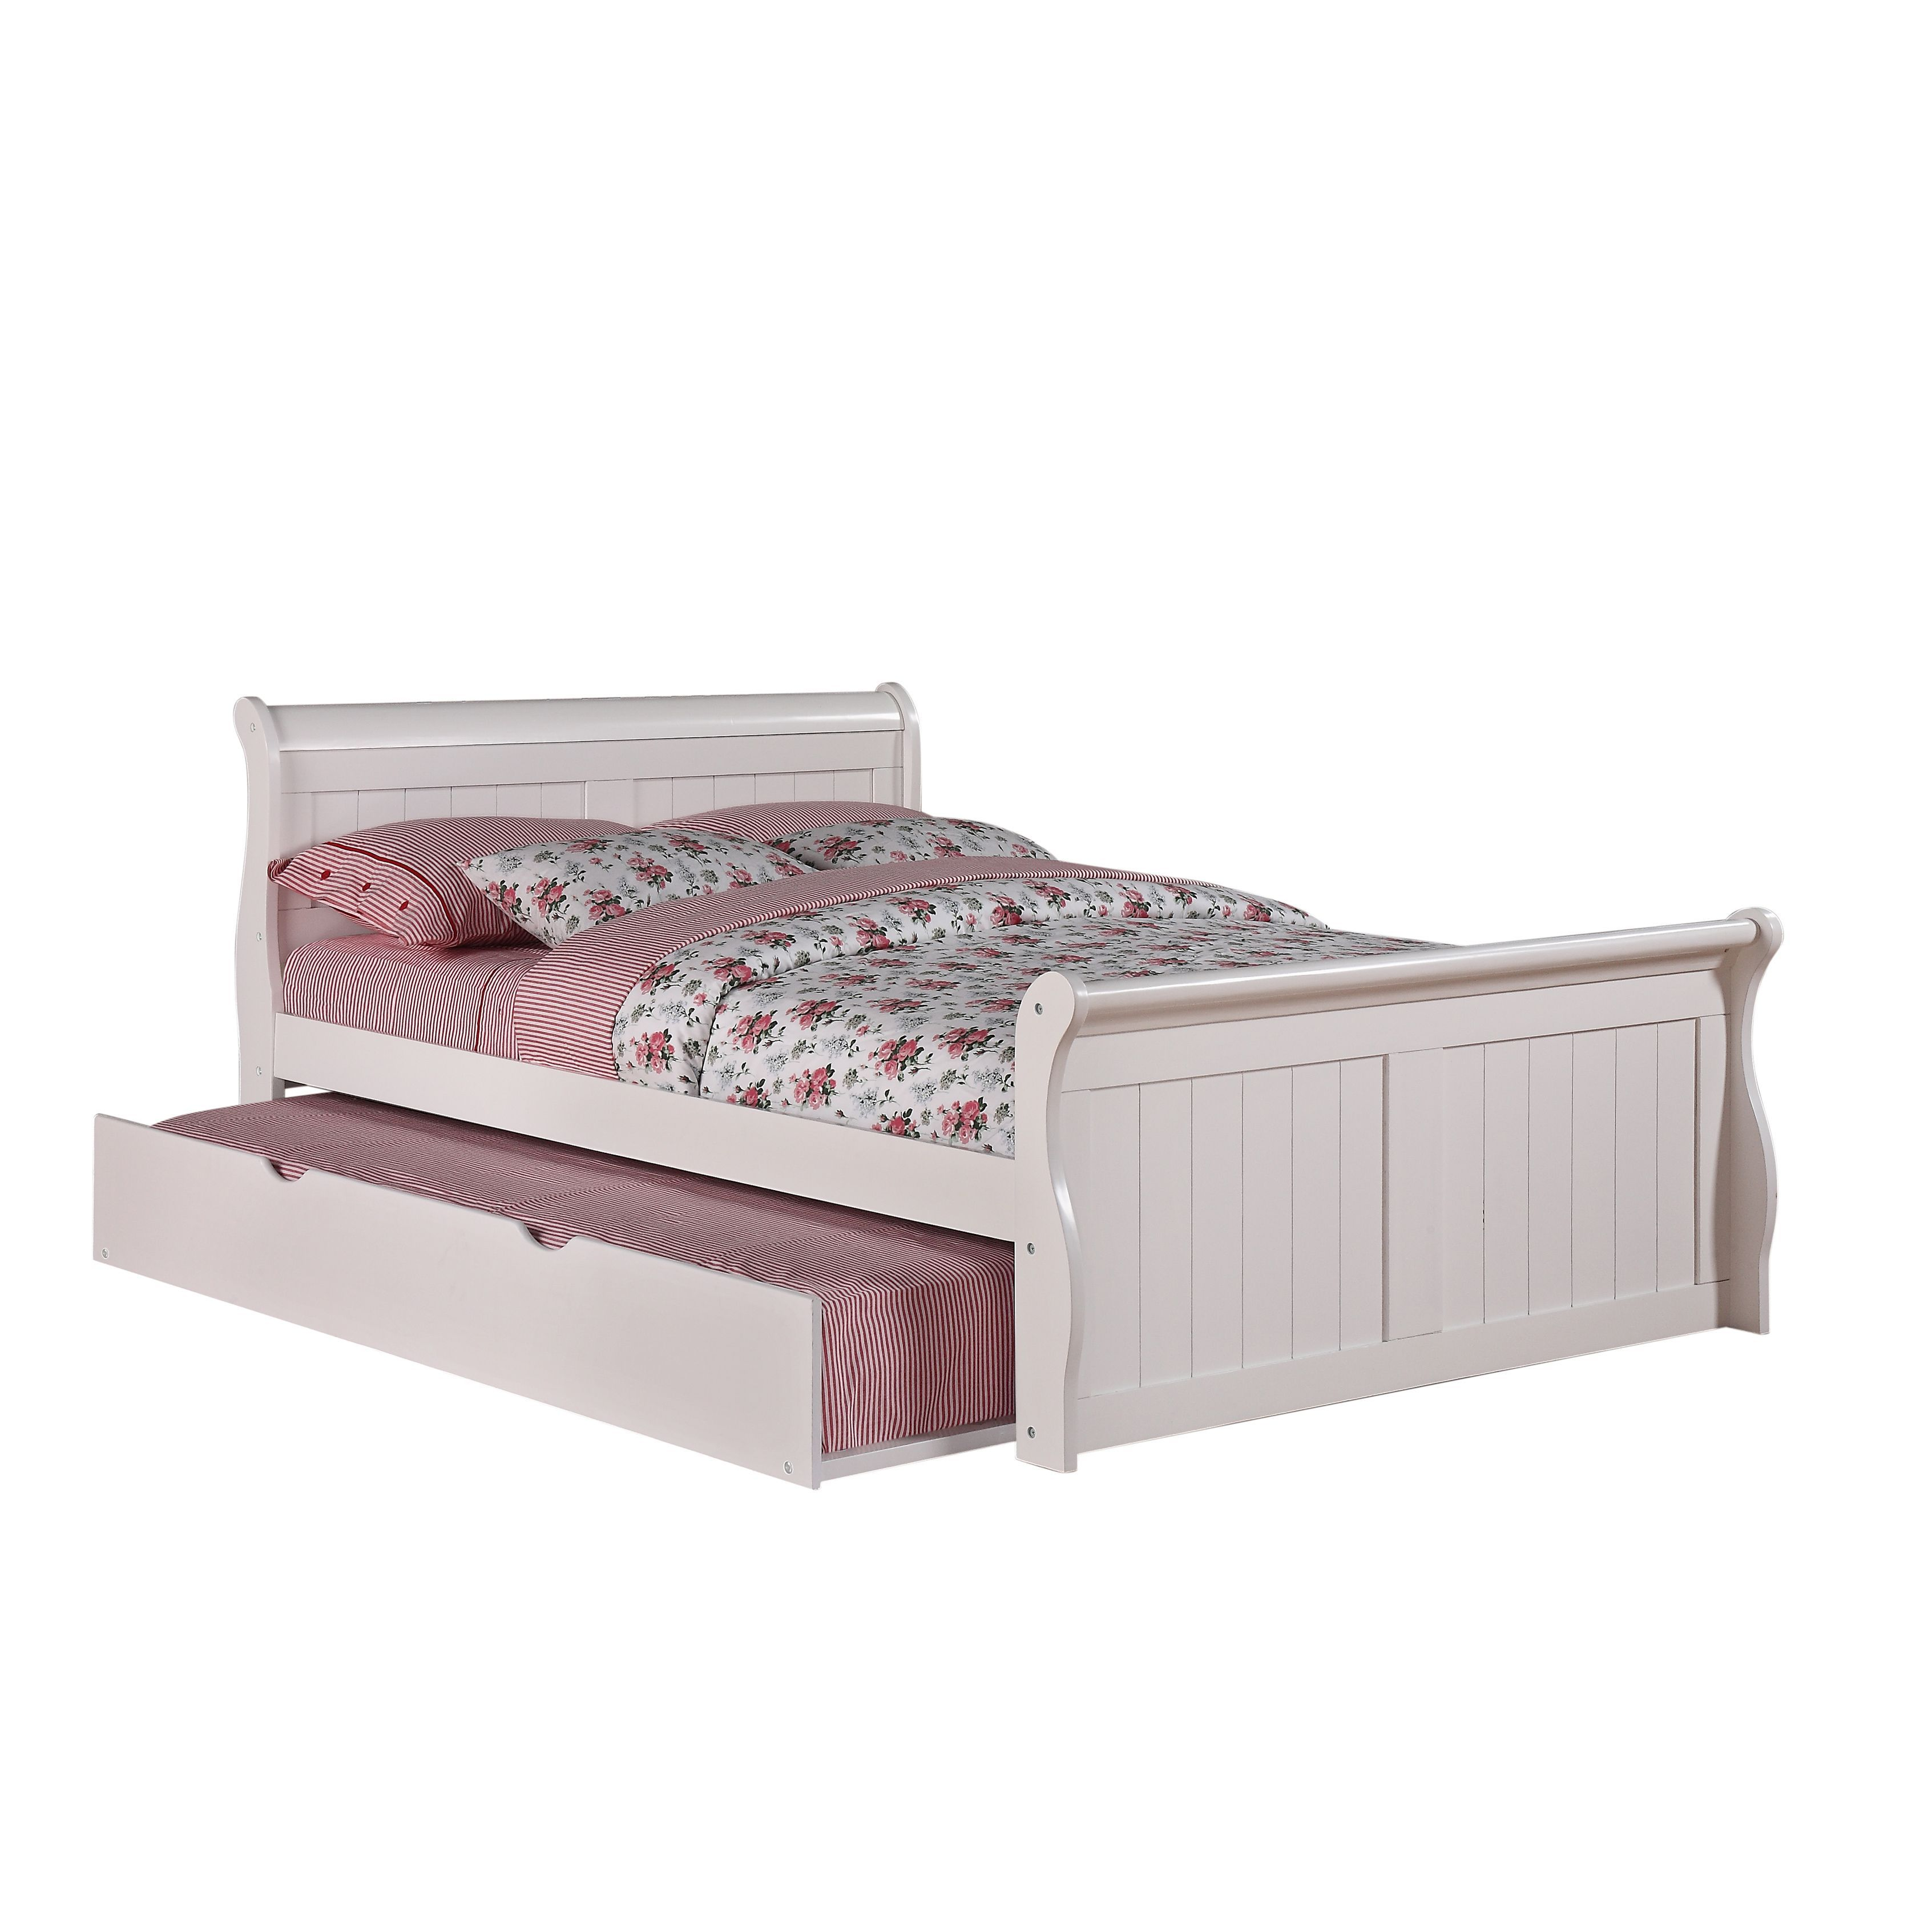 s for cheap to bunk size sale bedroom children cool of modern style full drawers trundle where junior twin youth childrens ideas bed kids upholstered furniture beds corner custom with storage buy